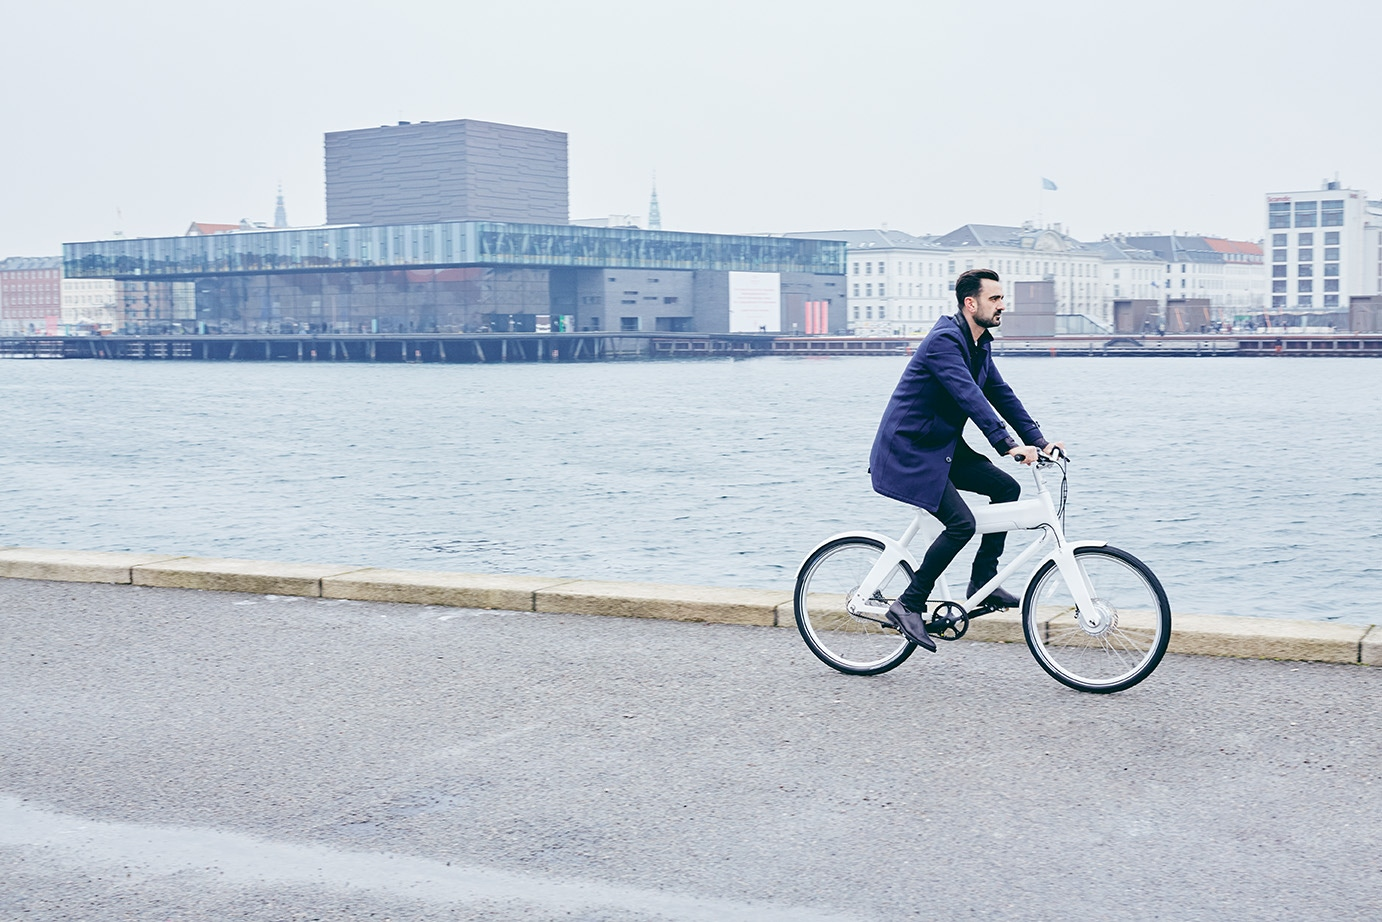 E-bikes: Change Your Point of View